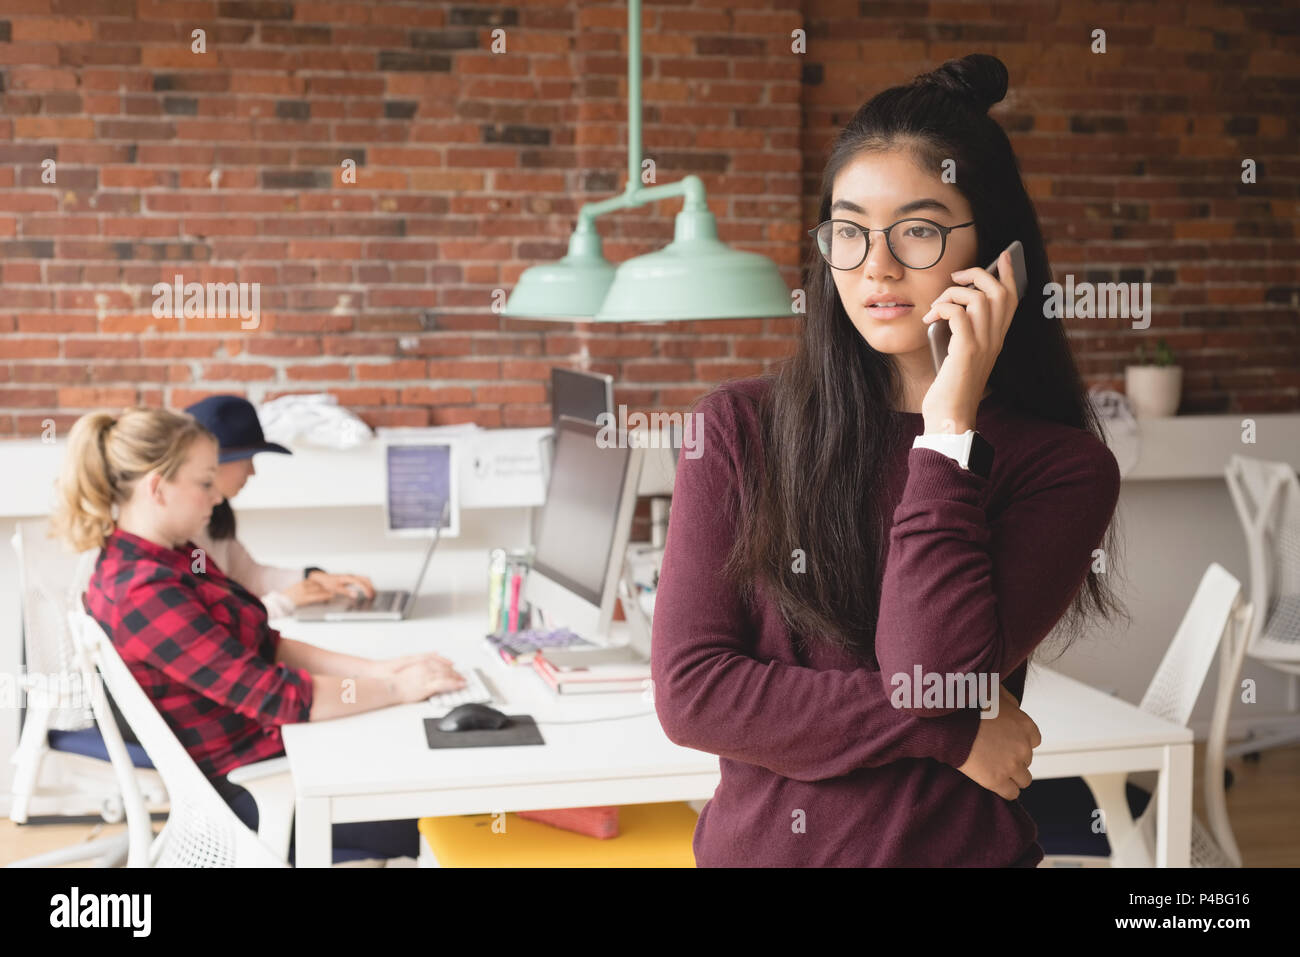 Female executive talking on mobile phone while colleagues working in background - Stock Image